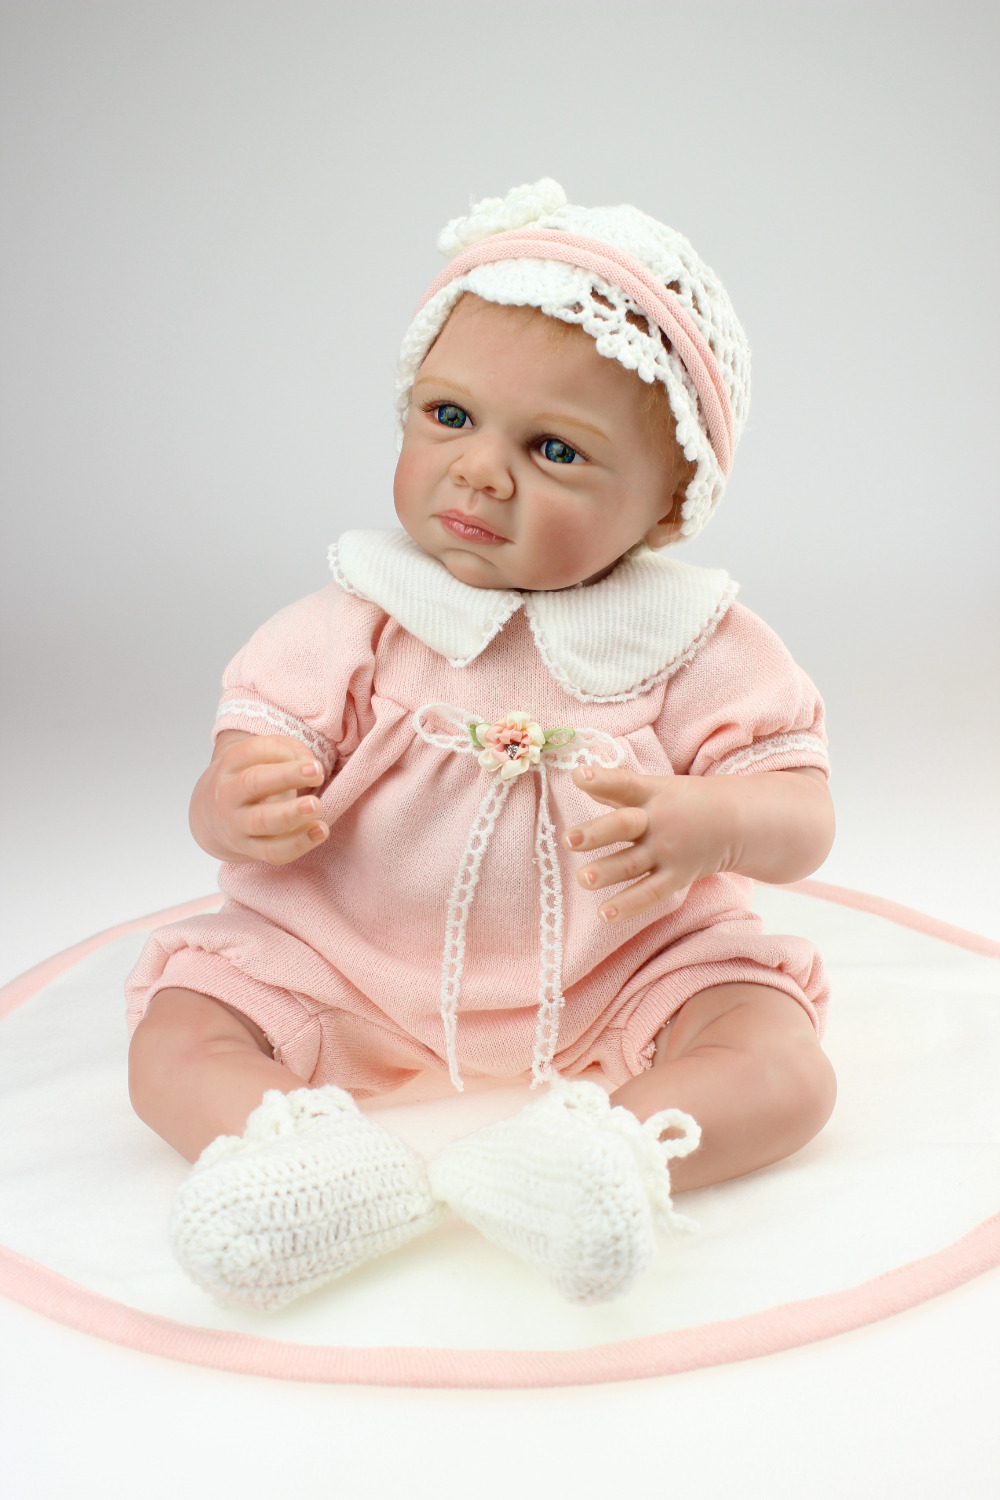 bfb8736f40b7 2015 new hot sale lifelike reborn baby doll wholesale baby dolls fashion  doll Birthday Present for girl baby-in Dolls from Toys   Hobbies on  Aliexpress.com ...